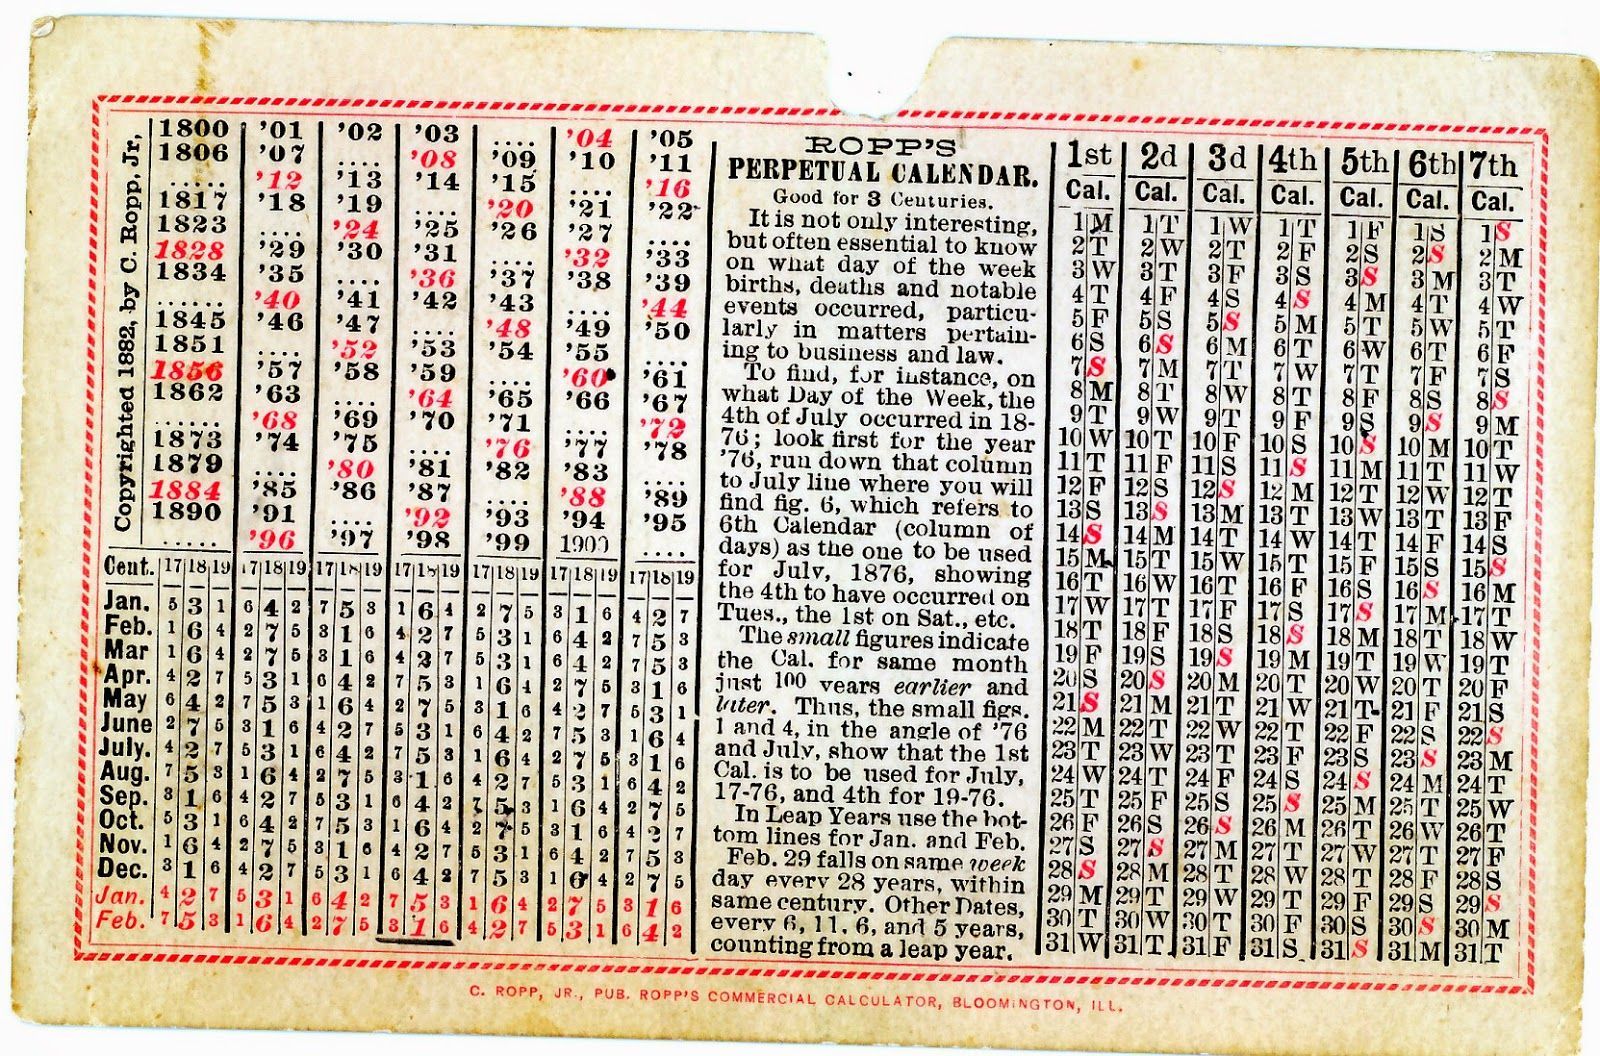 Perpetual Calendar 1800 To 2050 : World of the written word june